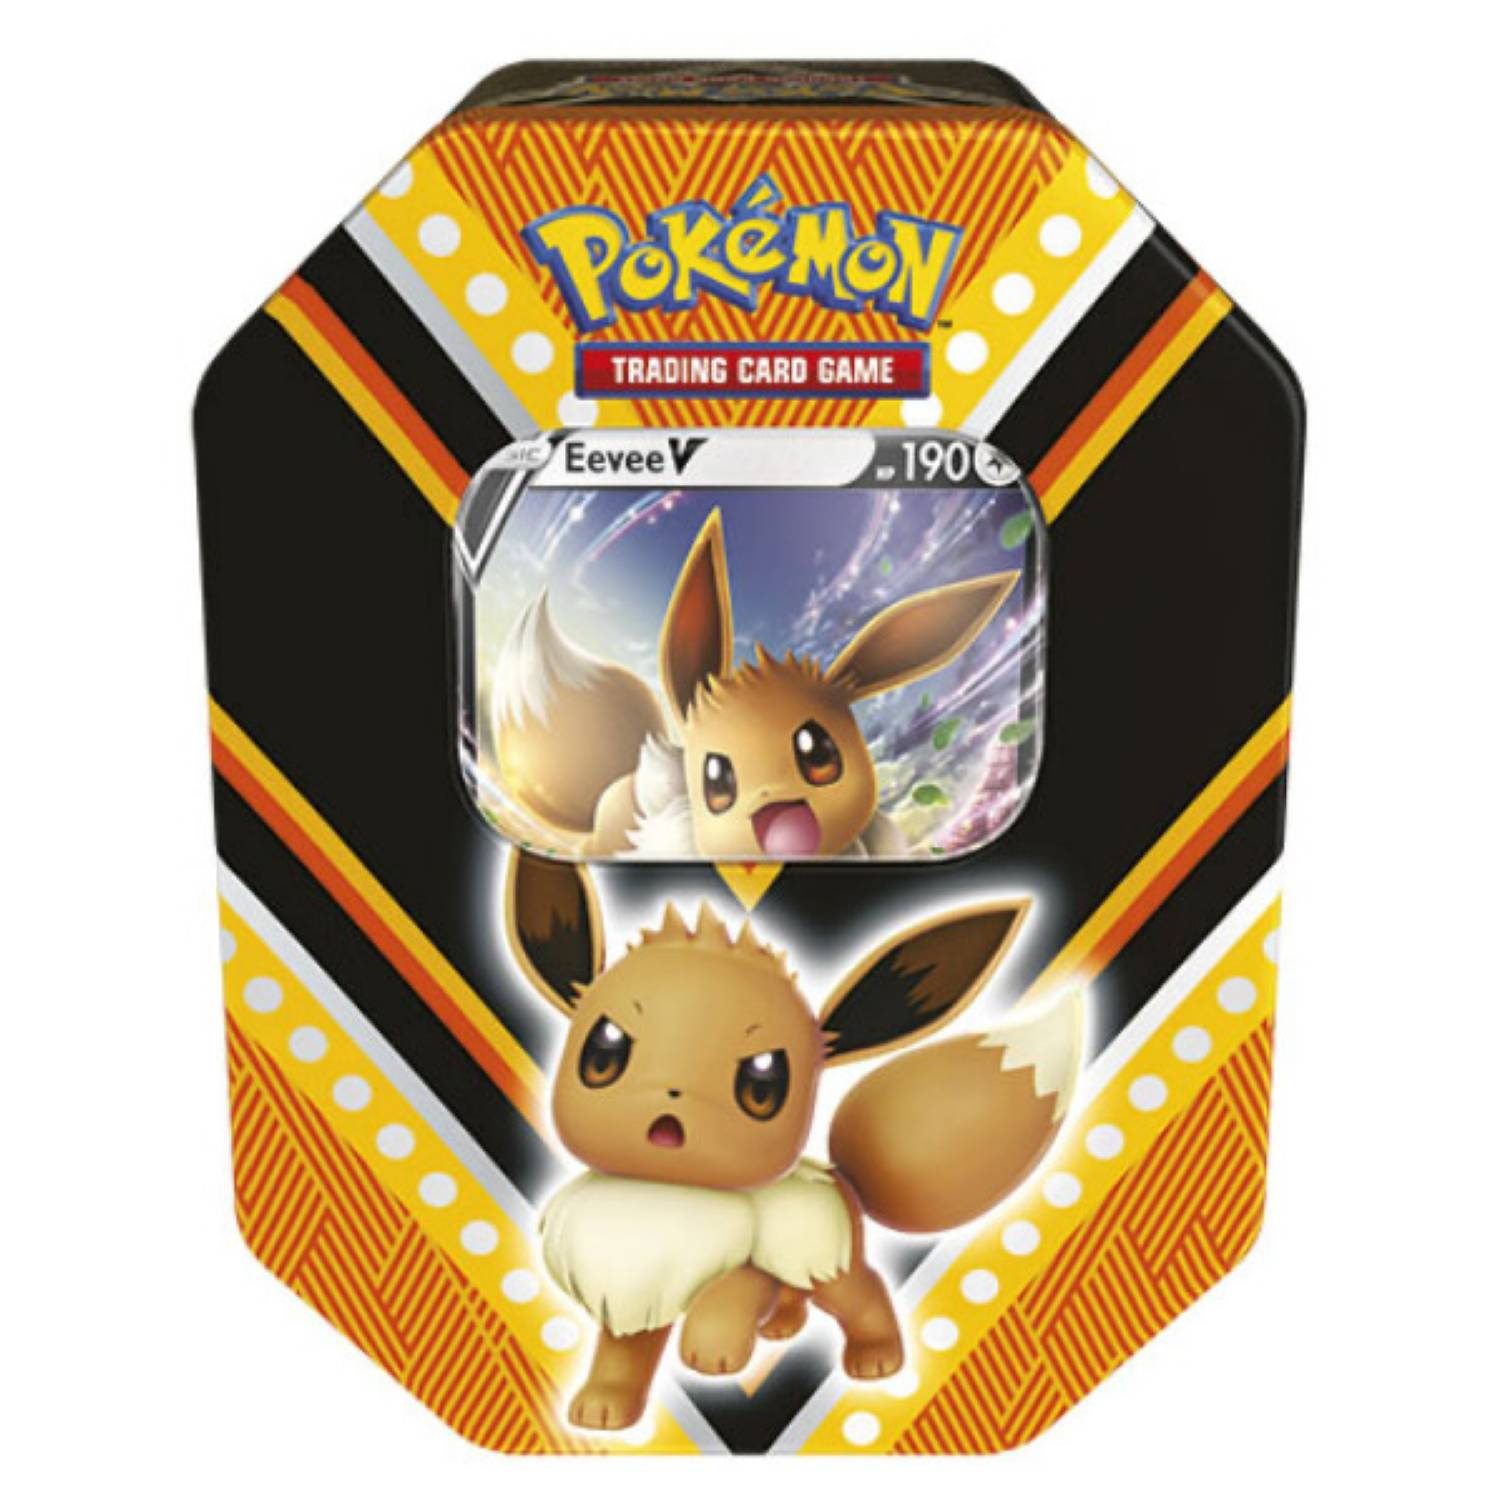 Puszka Pokemon TCG: Fall Tin 2020 - Eevee 4x Booster